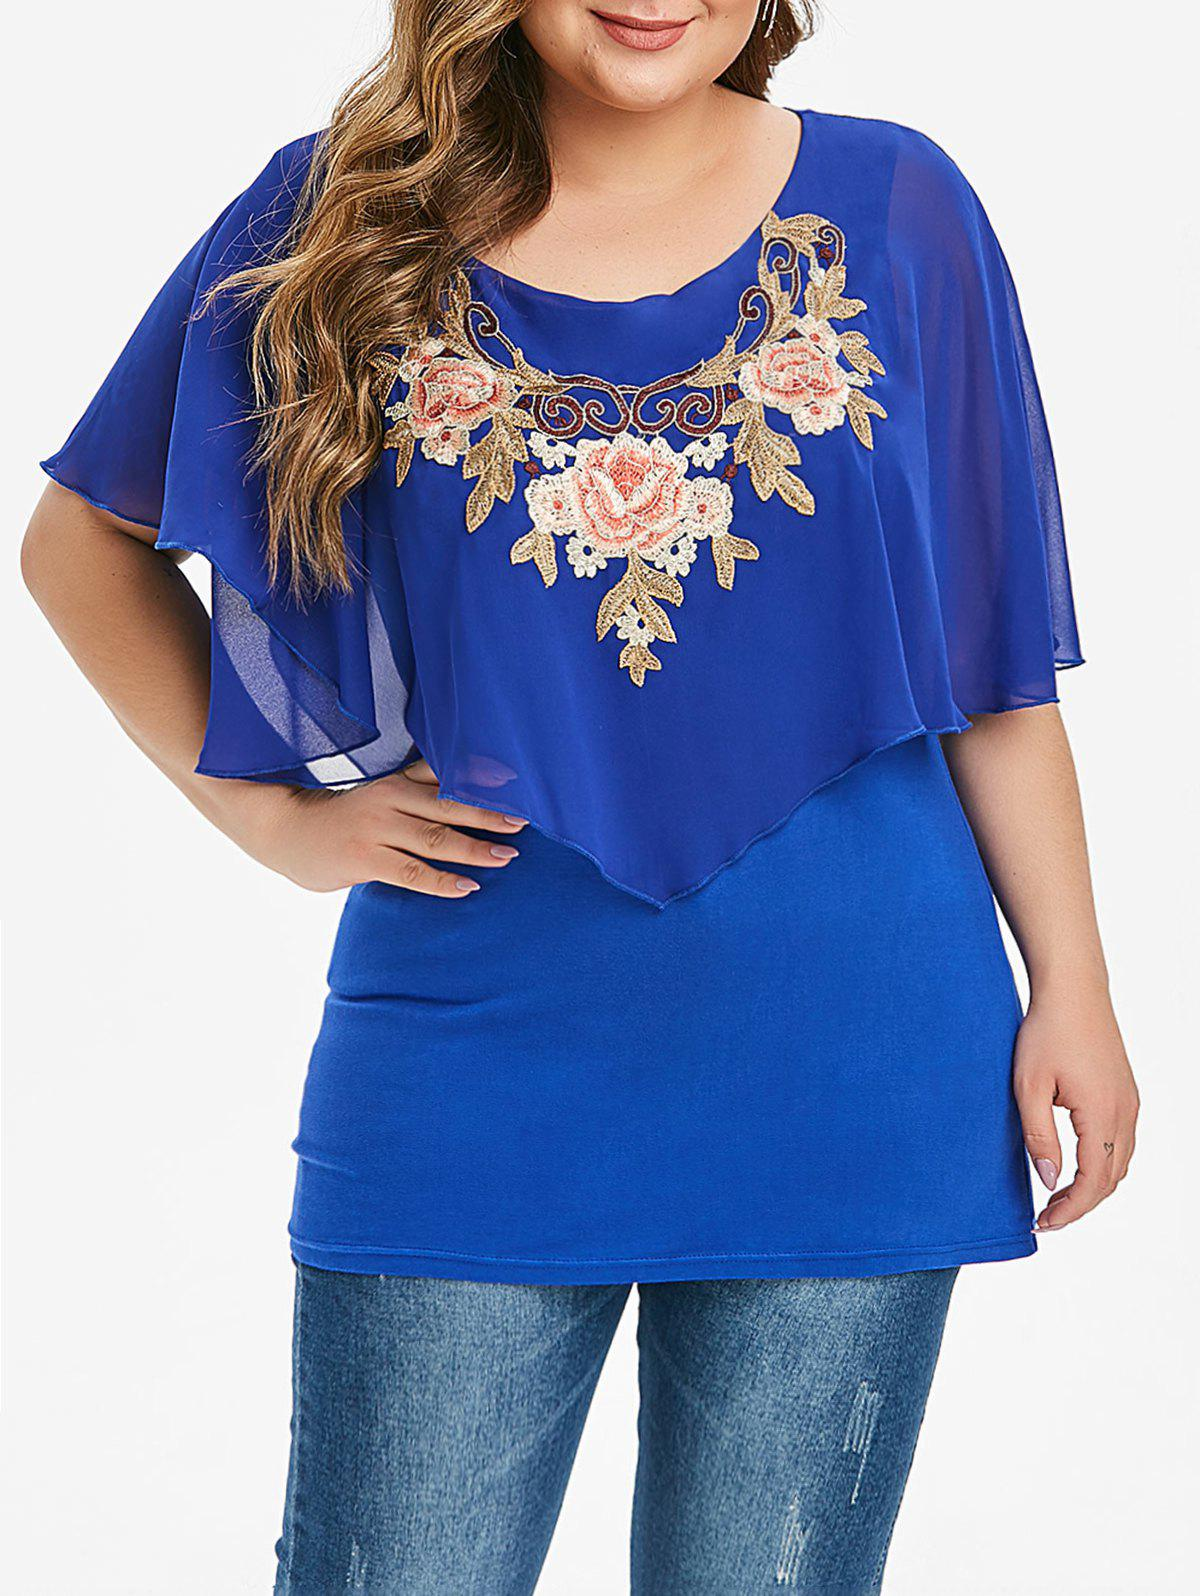 Floral Embroidered Overlay Chiffon Panel Plus Size Blouse - BLUE 2X